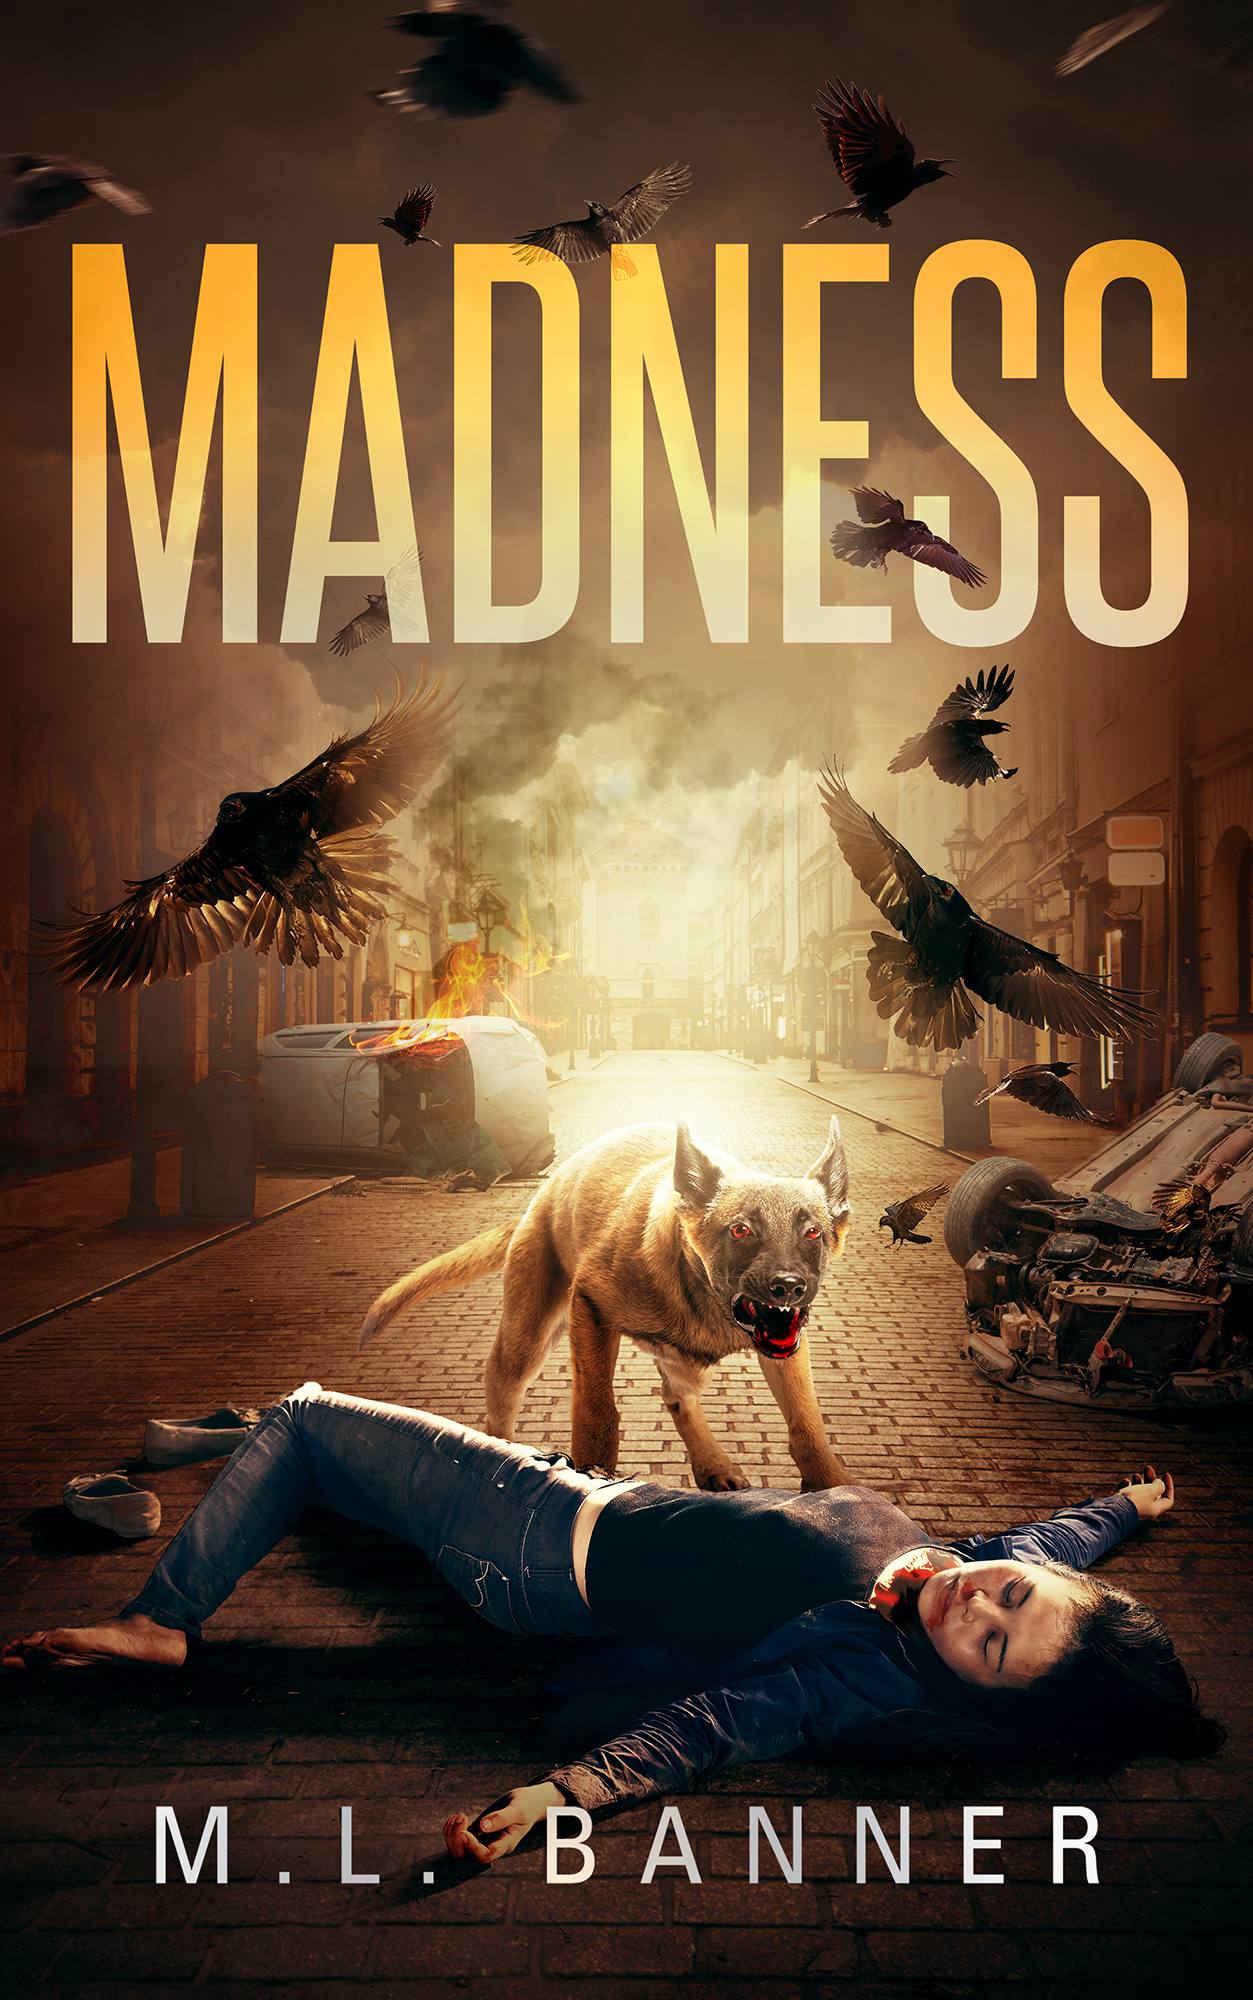 Madness Book 1 - Ebook Small